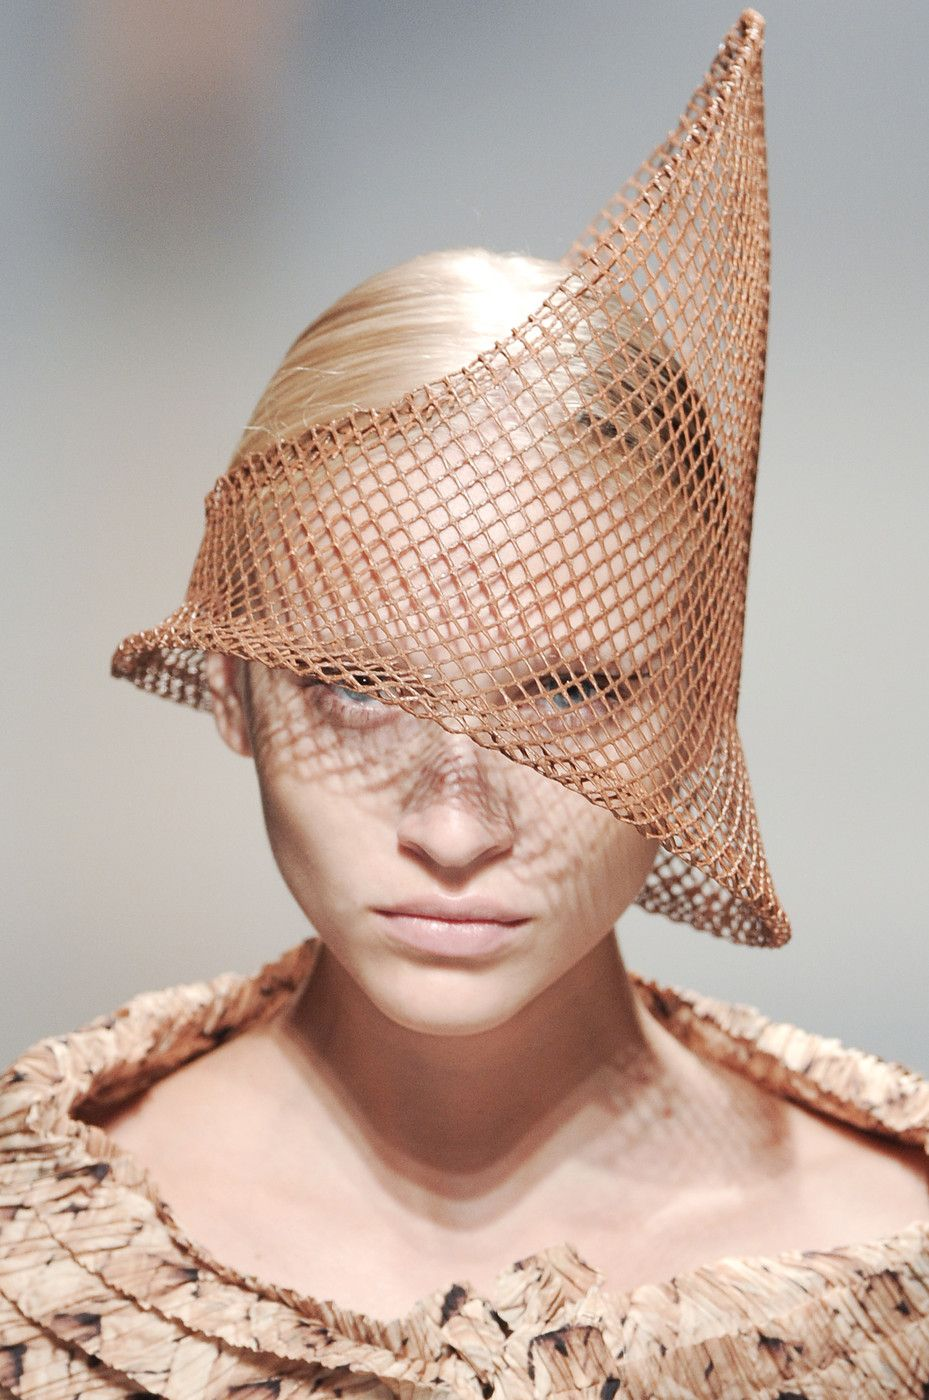 Conical Hat with honeycomb wire structure and bold asymmetry - experimental fashion design; wearable art // Issey Miyake